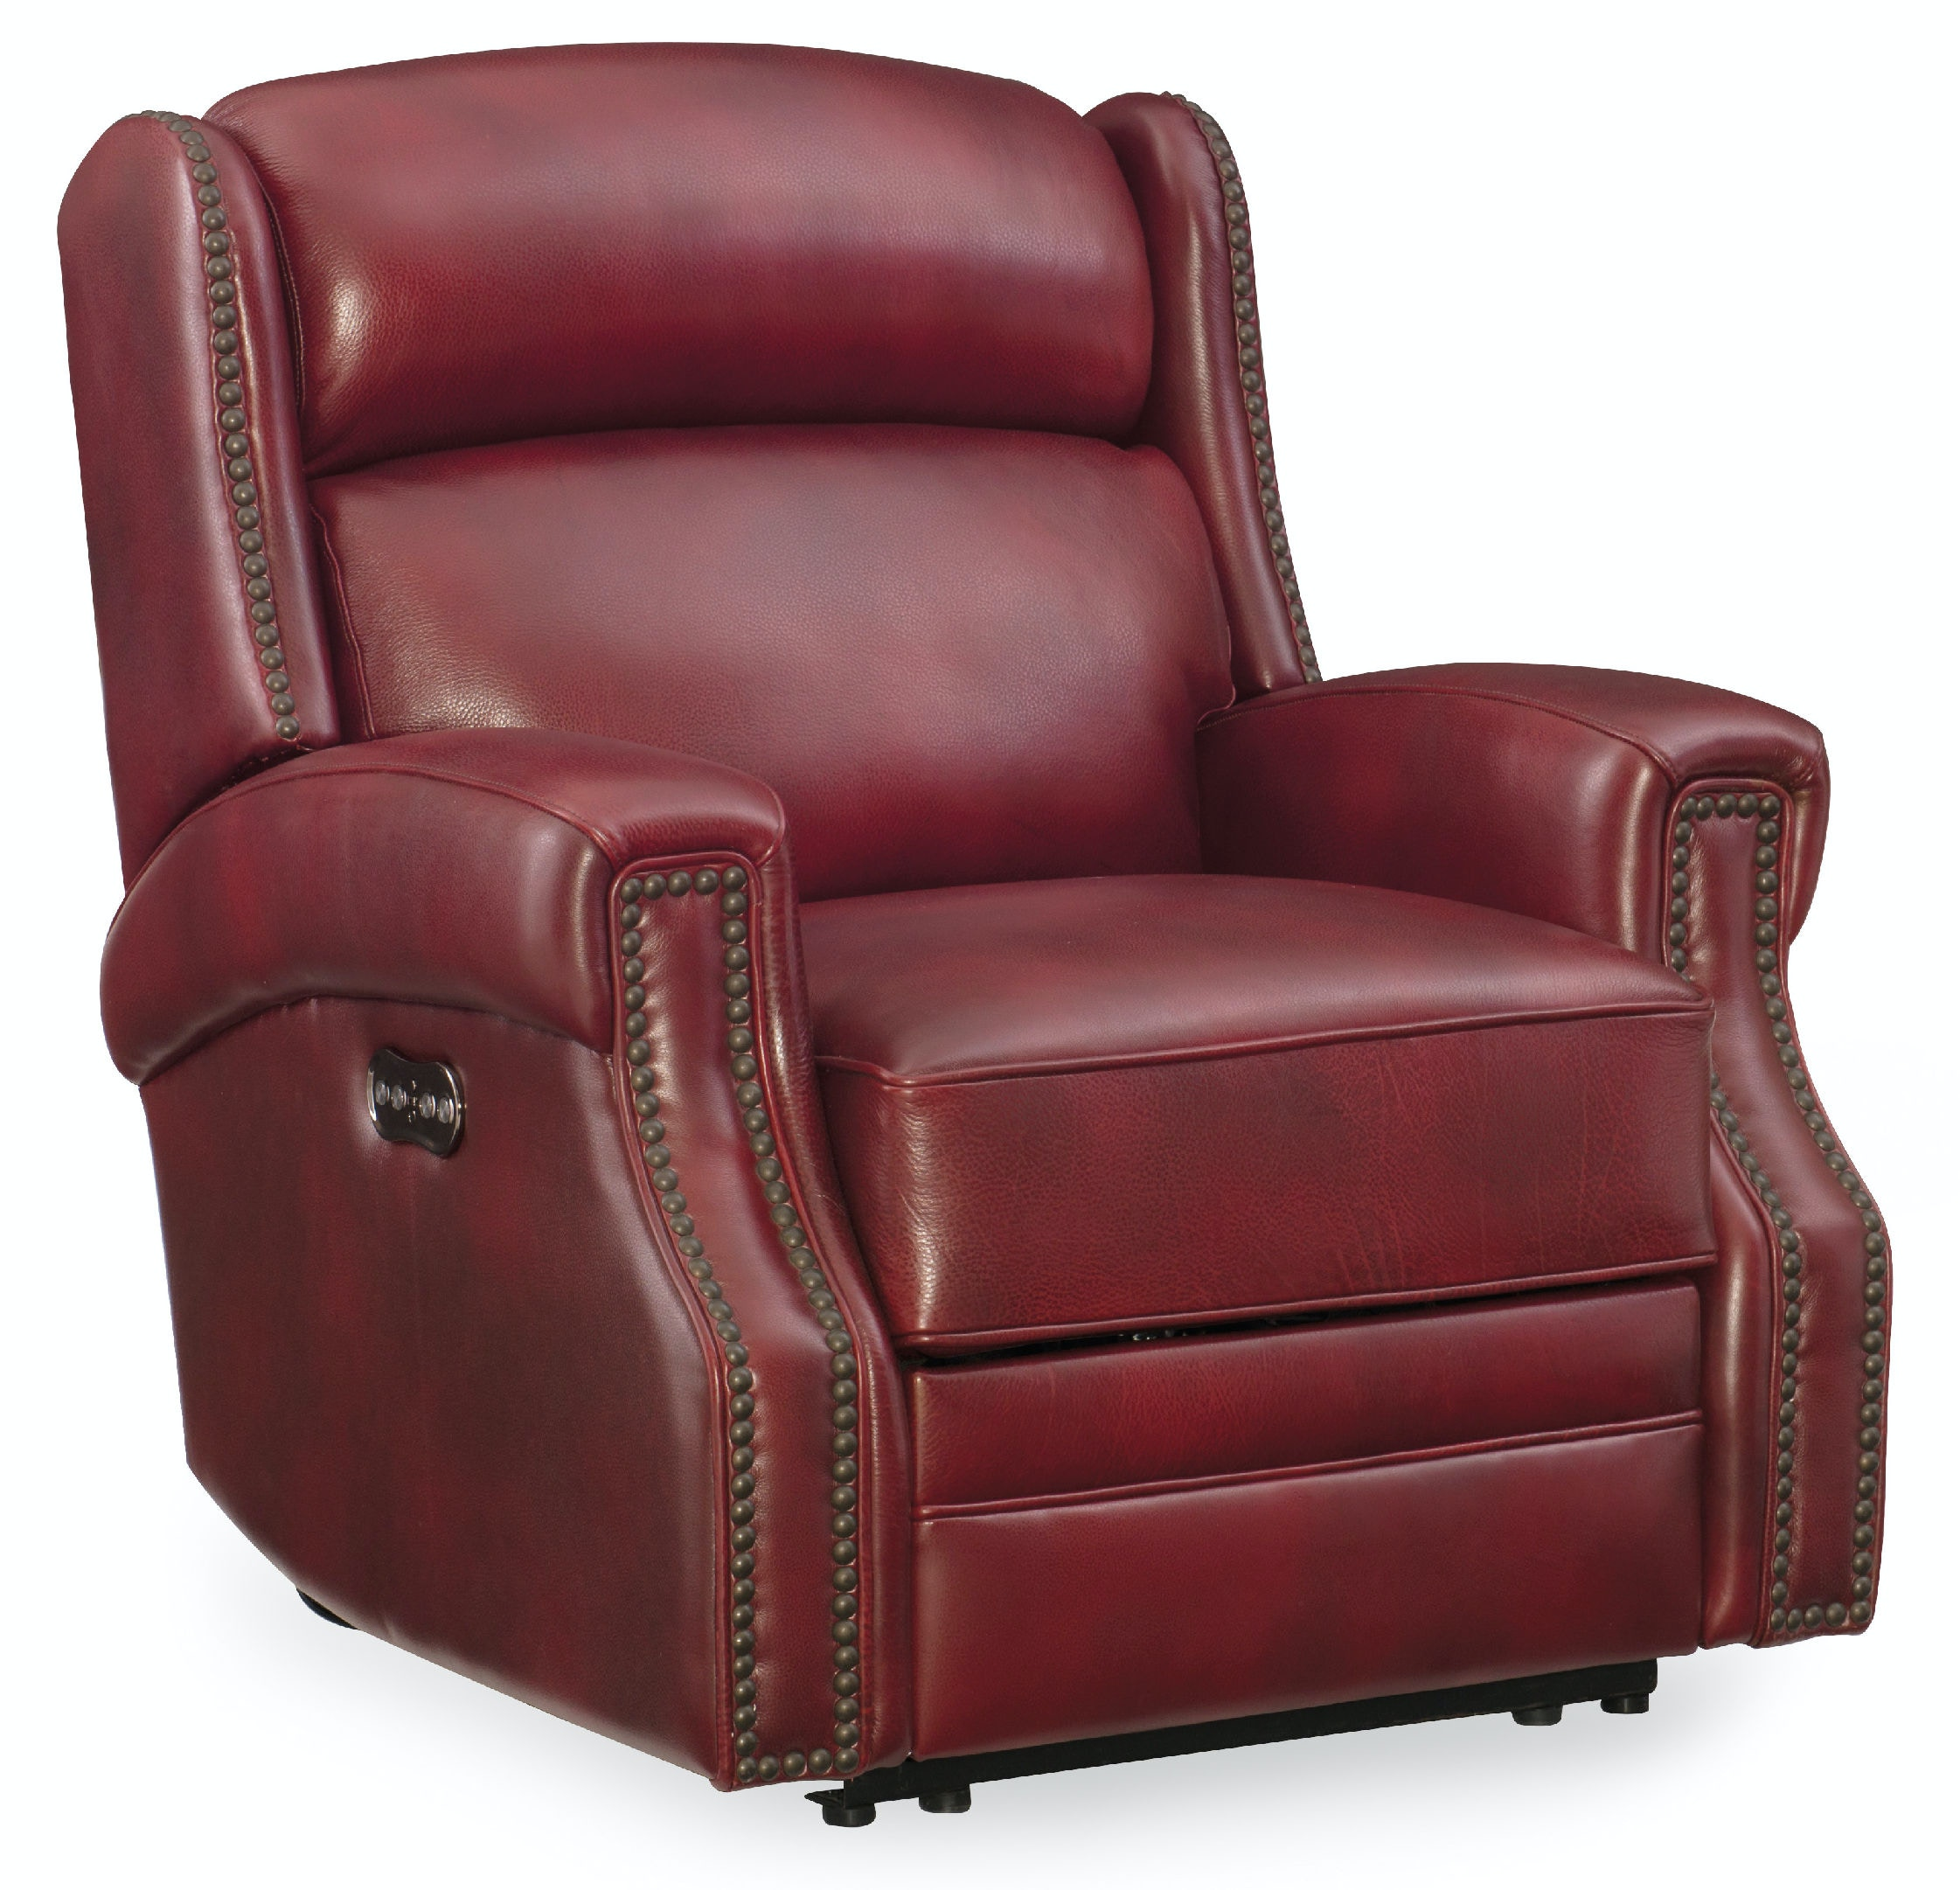 Carlisle Power Recliner w/Pwr Headrest SS460-PWR-165